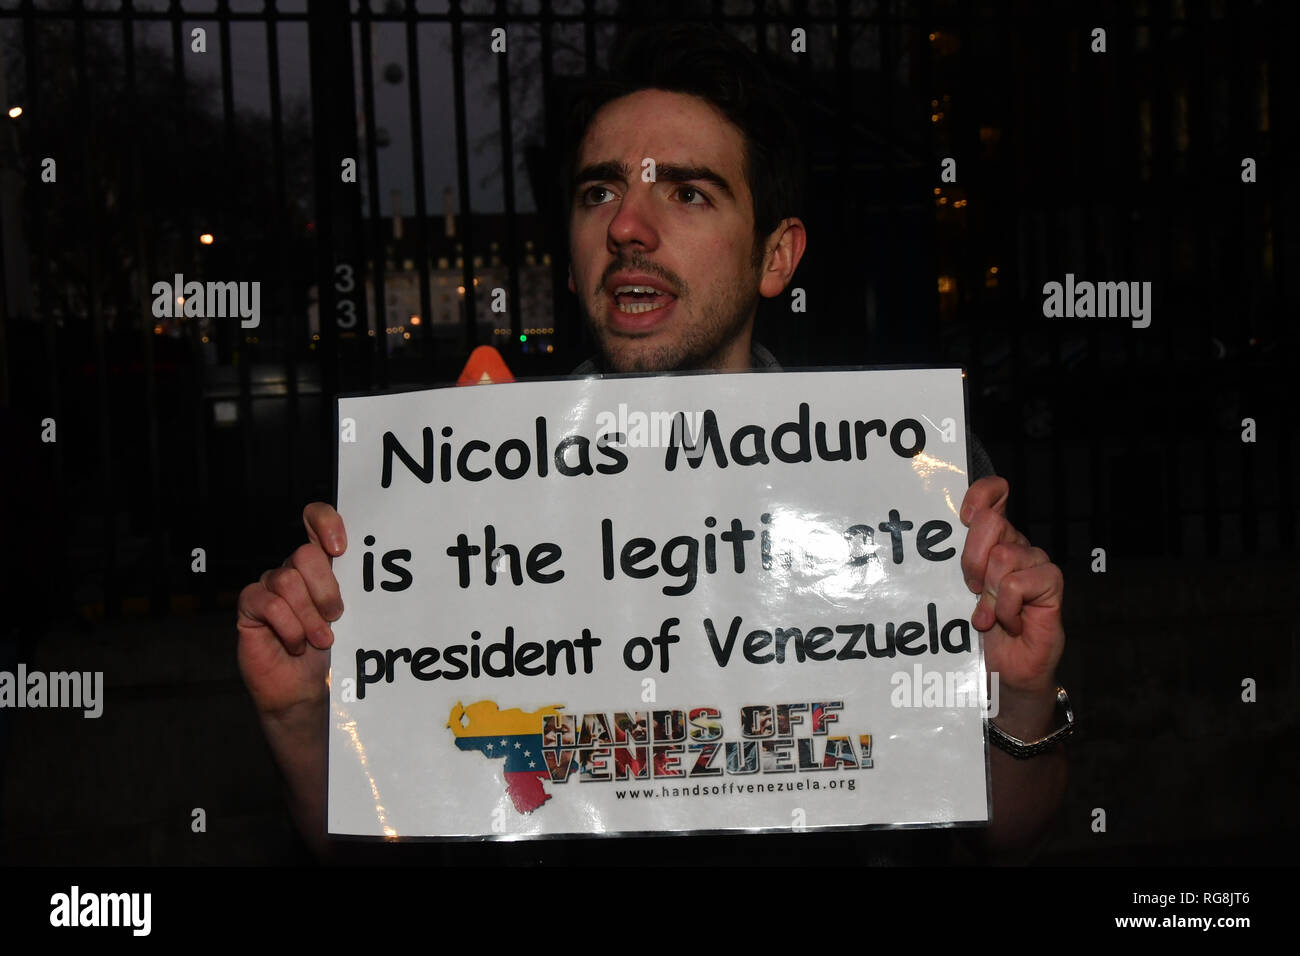 London, UK. 28th January 2019. The Latino community Reject imperialist against coup in Venezuel. Venezuelan people want their legitimate President Nicolás Maduro of Venezuela. The protestor also express the Latin nations will join together to fights the imperialist in any way and demand the Bank of England illegally holding 14 tonnes of Venezuelan gold itd should hand back to the Venezuelan authorities opposite Downing Street on 28 January 2019, London, UK. Credit: Picture Capital/Alamy Live News - Stock Image